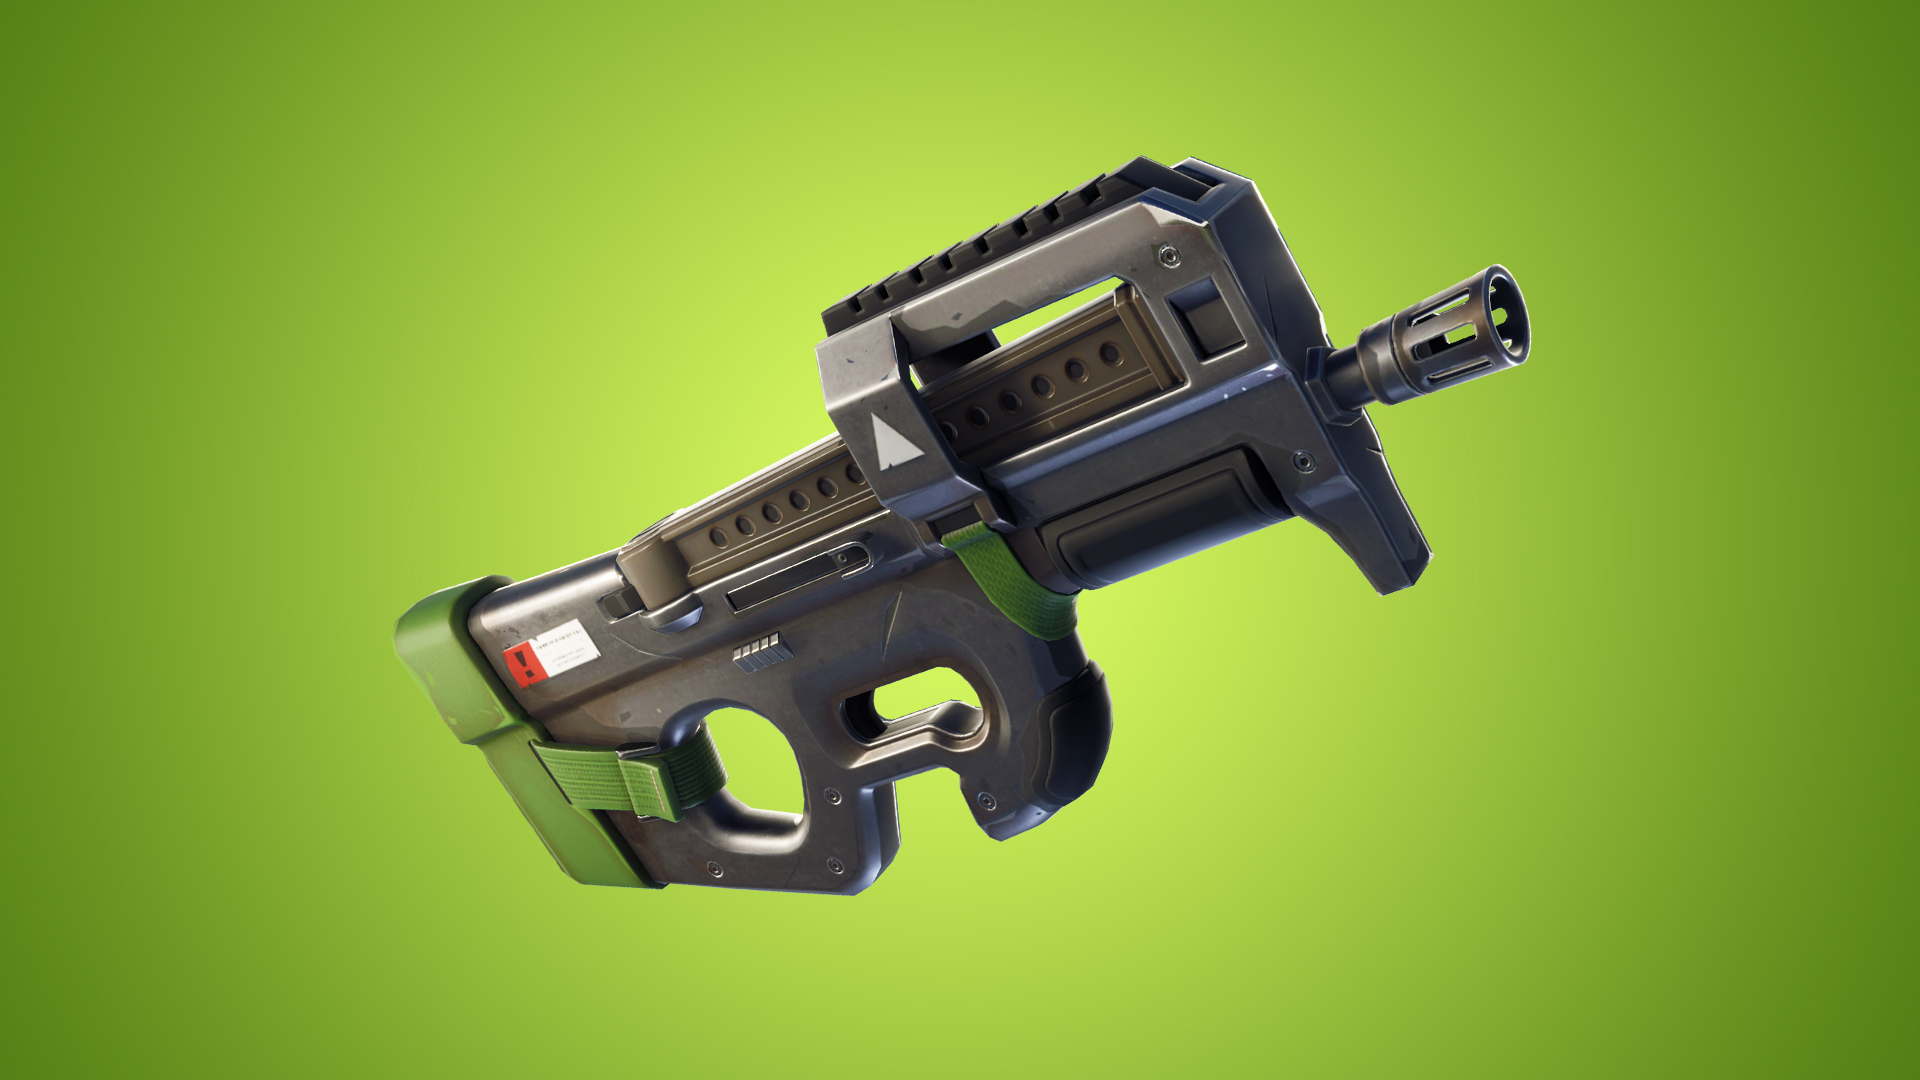 Fortnite update celebrates 1st birthday with cake and a Compact SMG